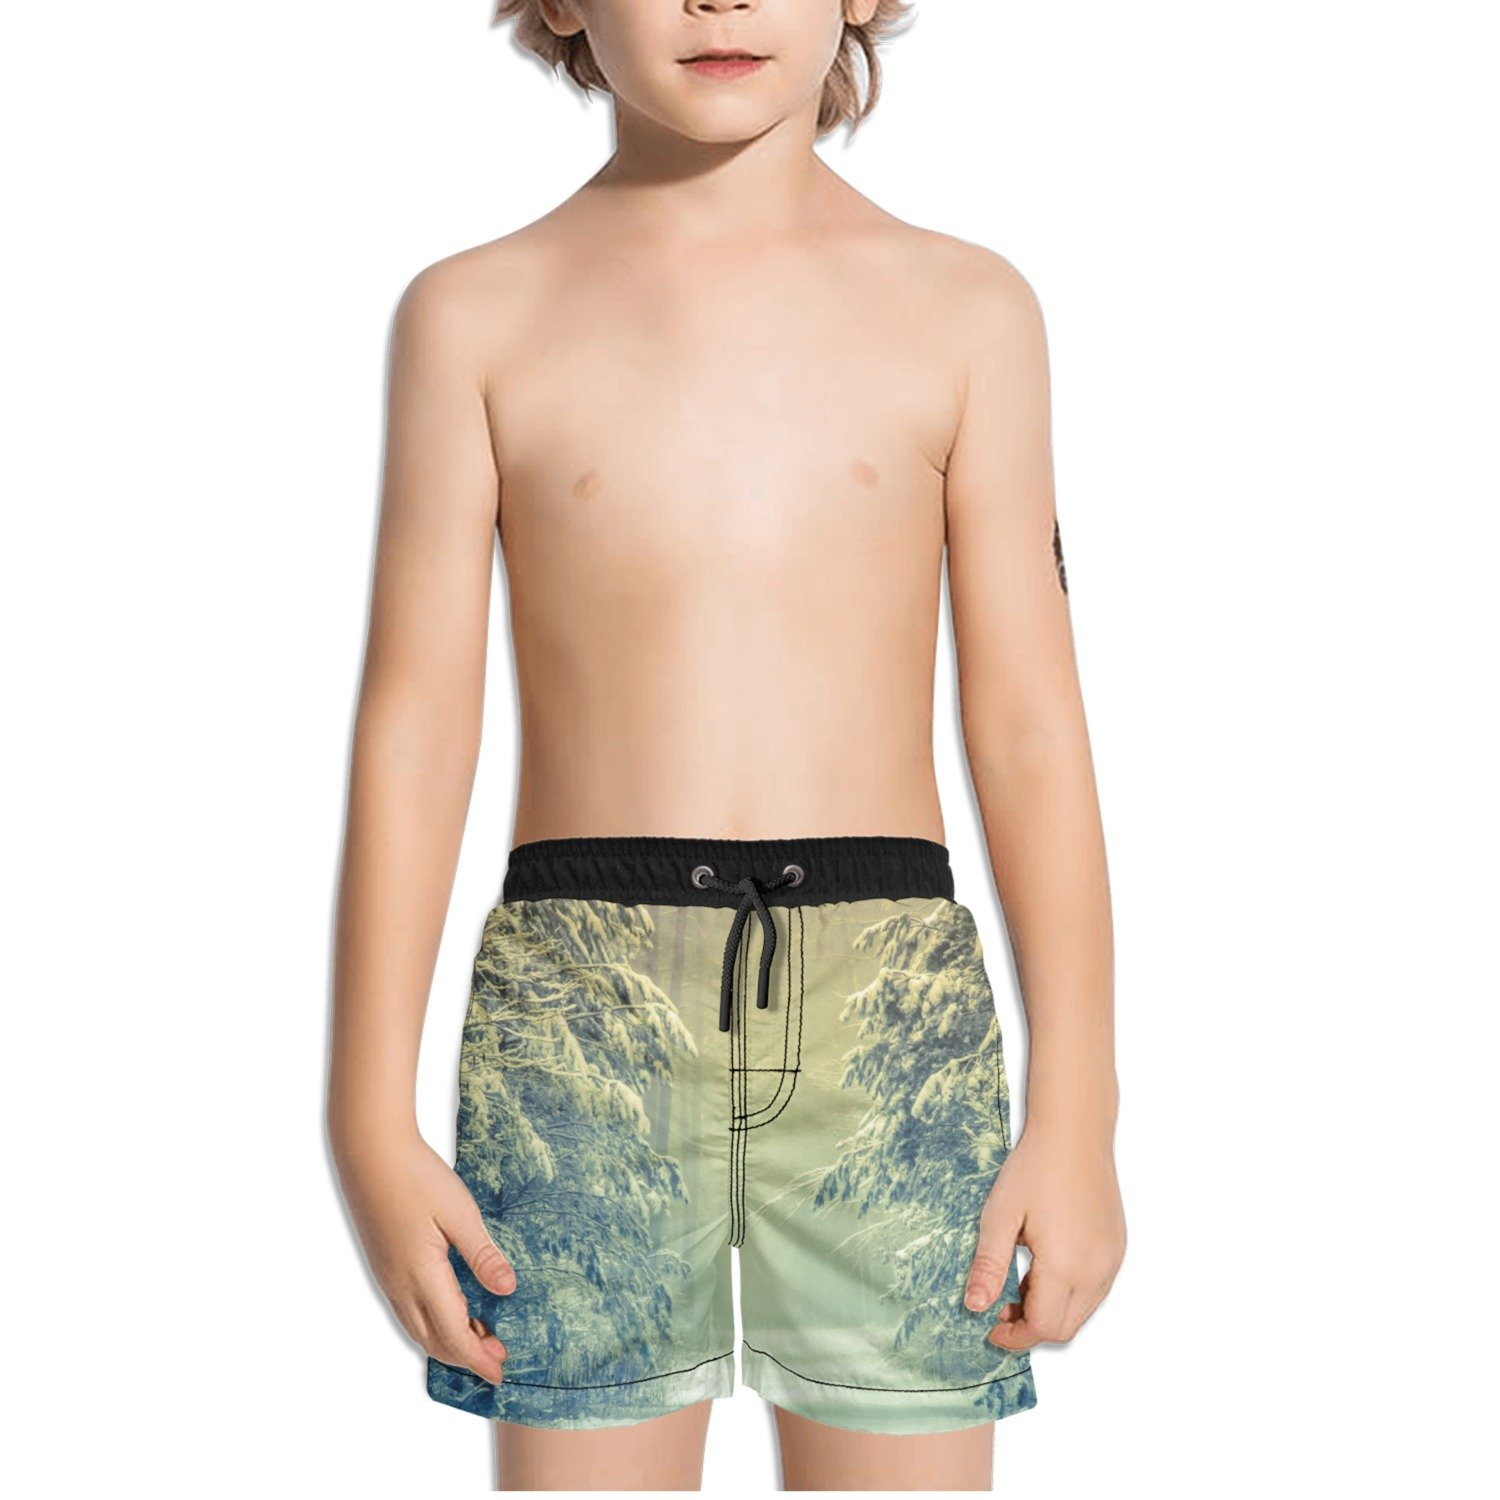 Ouxioaz Boys Swim Trunk Winter Forest Beach Board Shorts